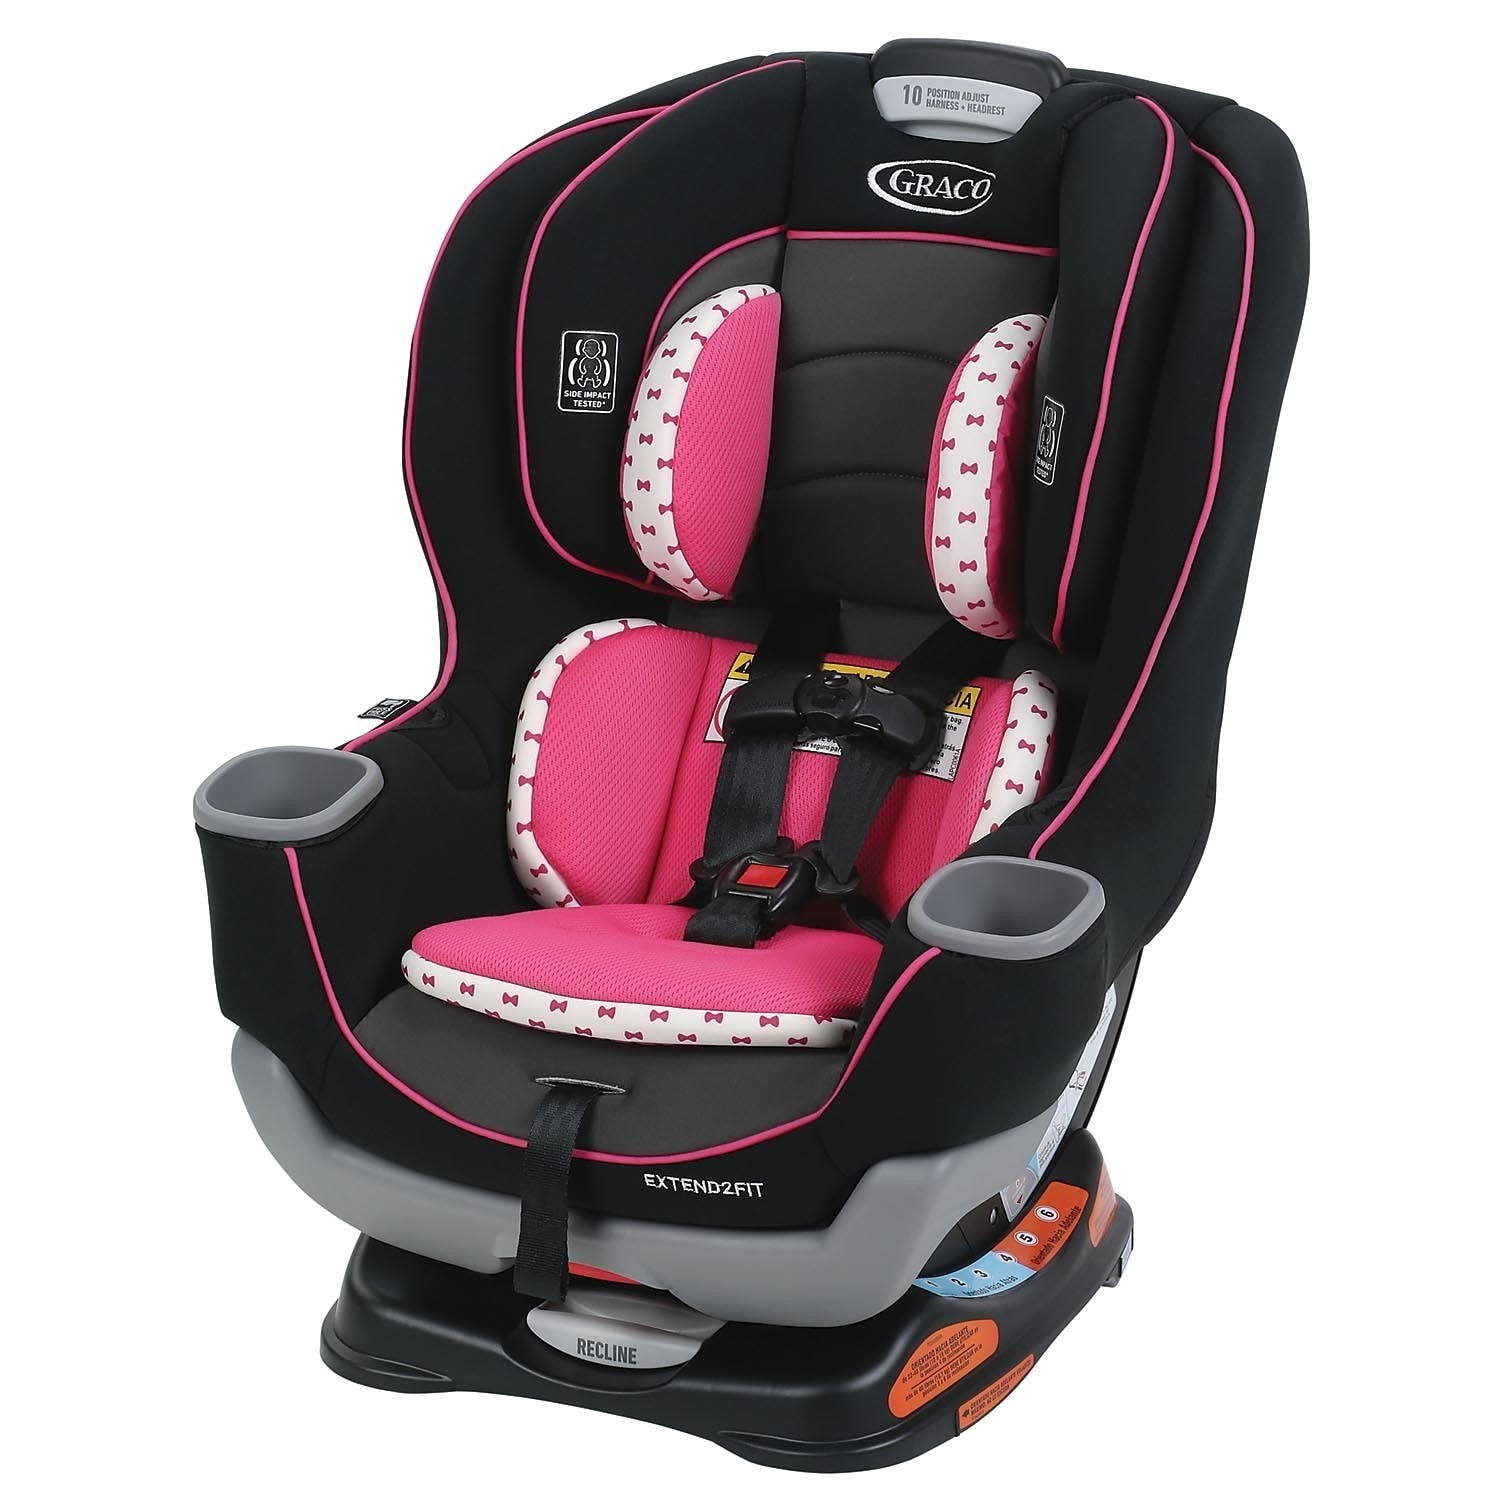 Graco Kenzie Extend2fit Convertible Car Seat Free Shipping Today 11908286